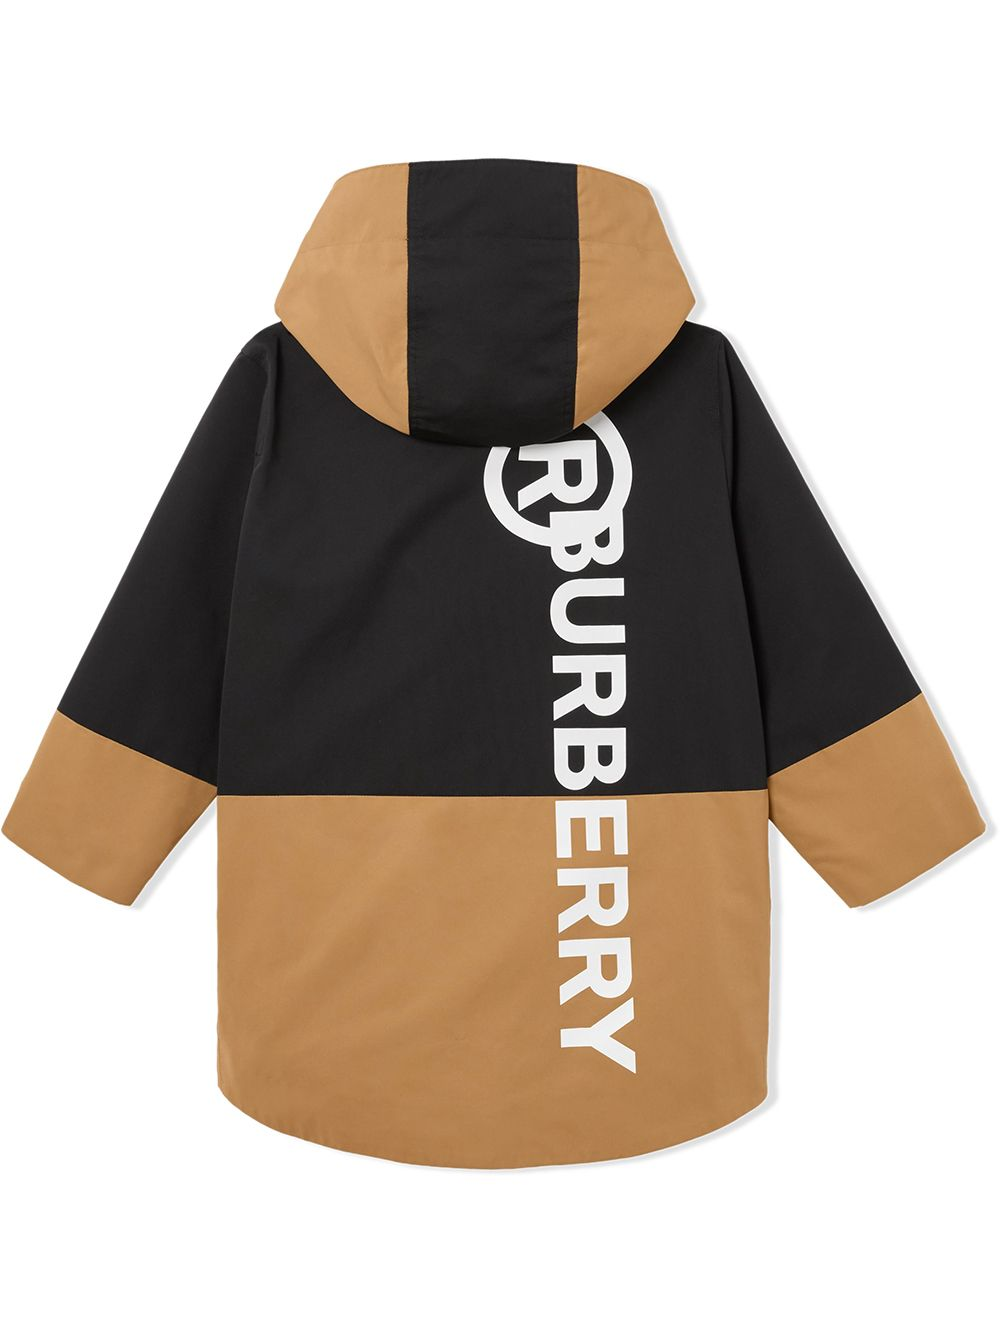 PARKA MULTICOLOR BURBERRY KIDS | Giubbino | 8032748A2442#